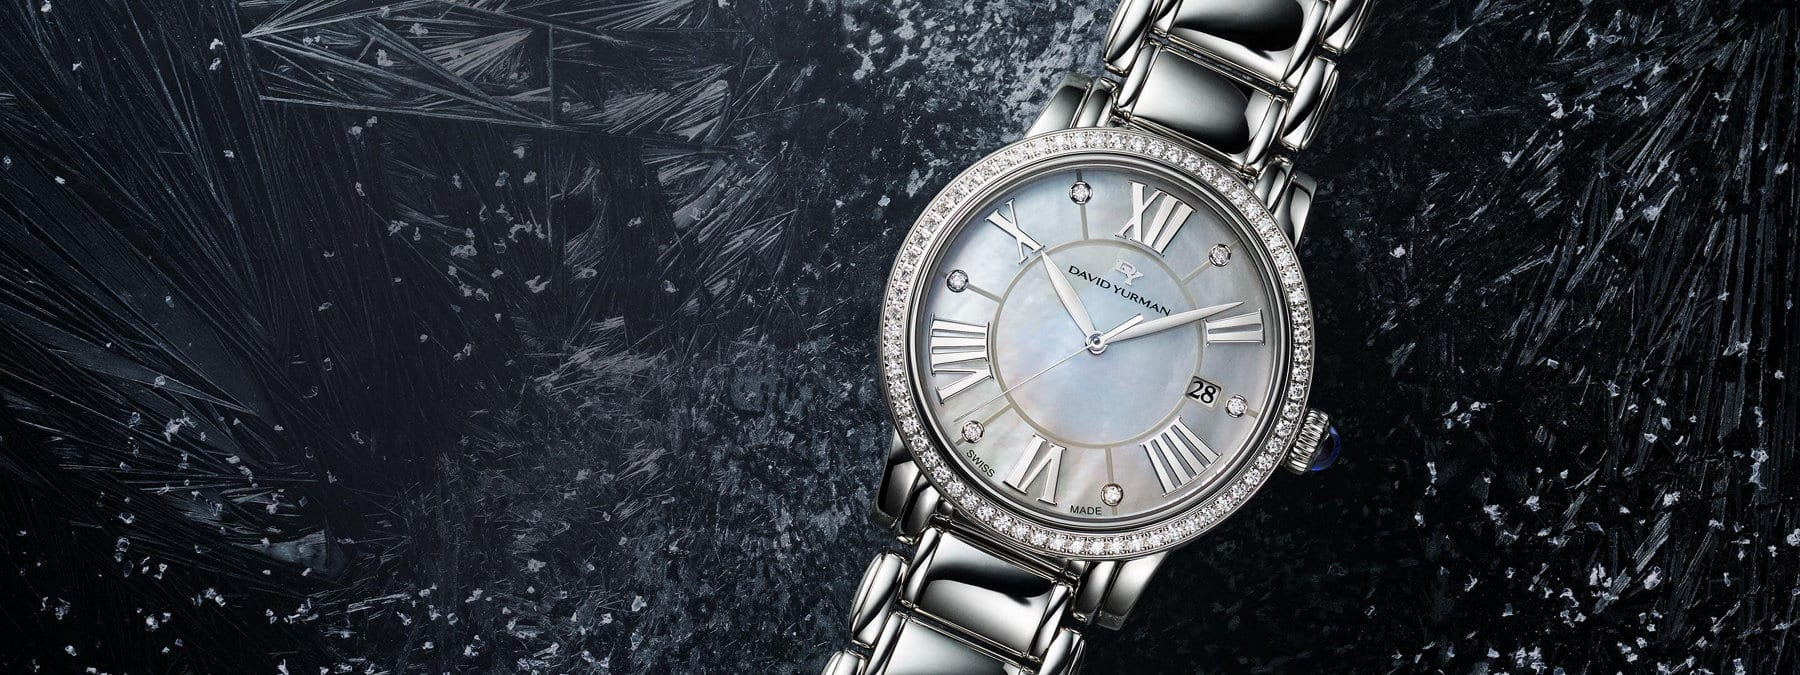 A color photograph shows a close-up of a David Yurman Classic women's watch atop a dark ice-covered surface. The bracelet watch is crafted from stainless steel with a ring of pavé diamonds around its mother-of-pearl face and six white diamonds set between roman numerals on its face.